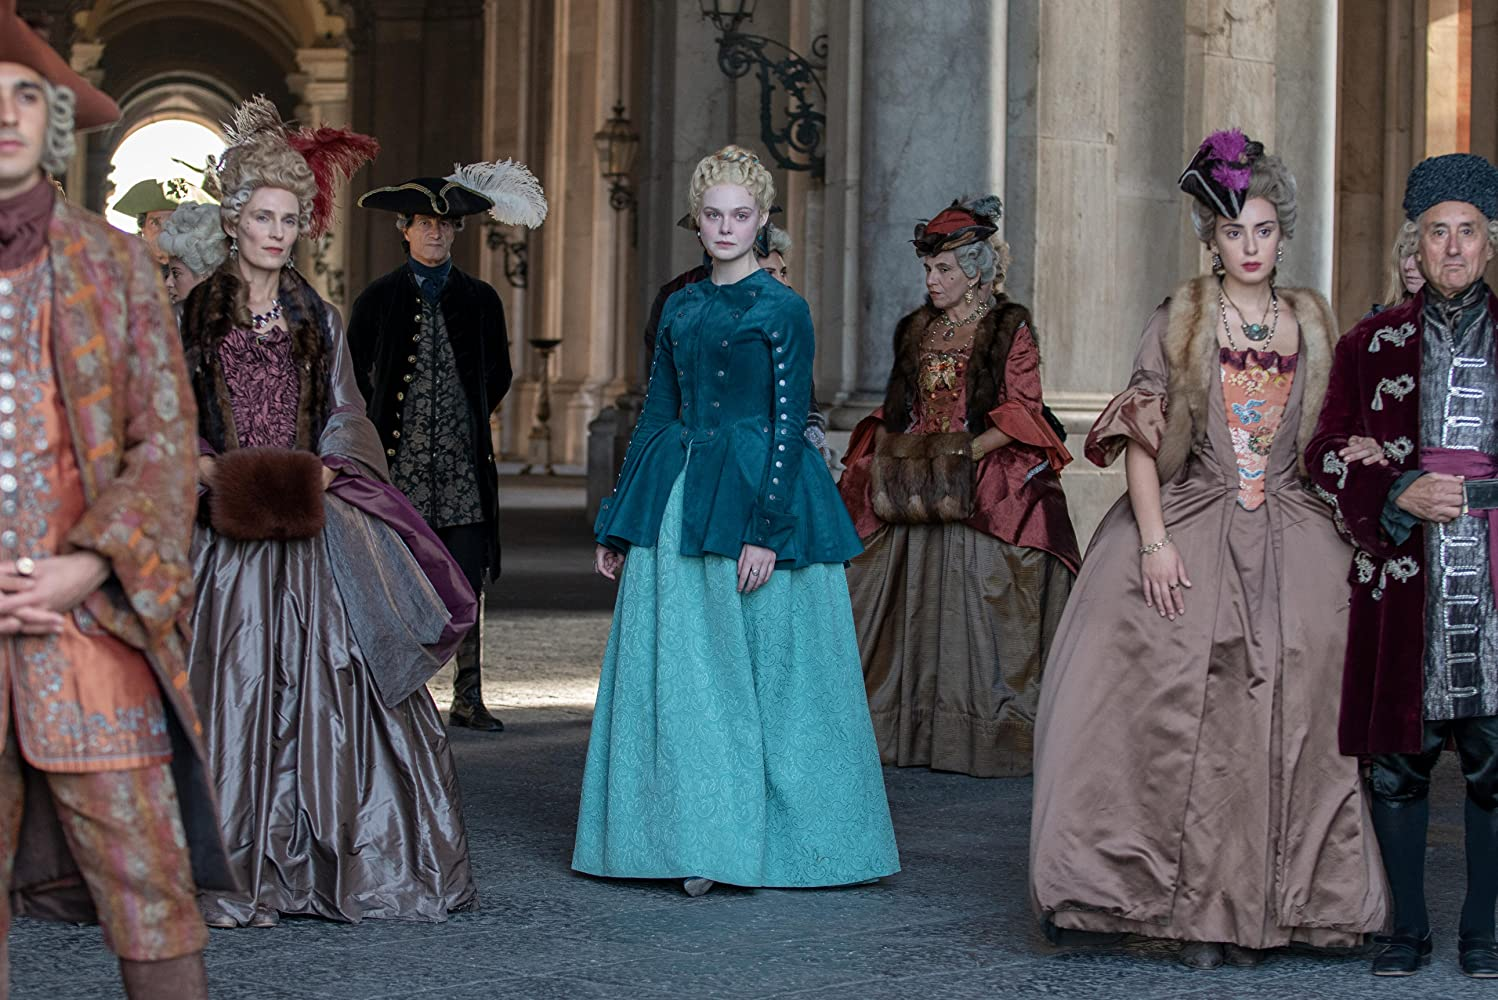 Elle Fanning in 'The Great' (2020). Catherine, her hair pulled back in an updo, is wearing a light turquoise gown with a darker teal velvet jacket over the top which buttons up to her neck in a more austere look. She stands centre frame in a crowd of other courtiers wearing elegant gowns and suits, but all in shades of brown and orange, making Catherine stand out.